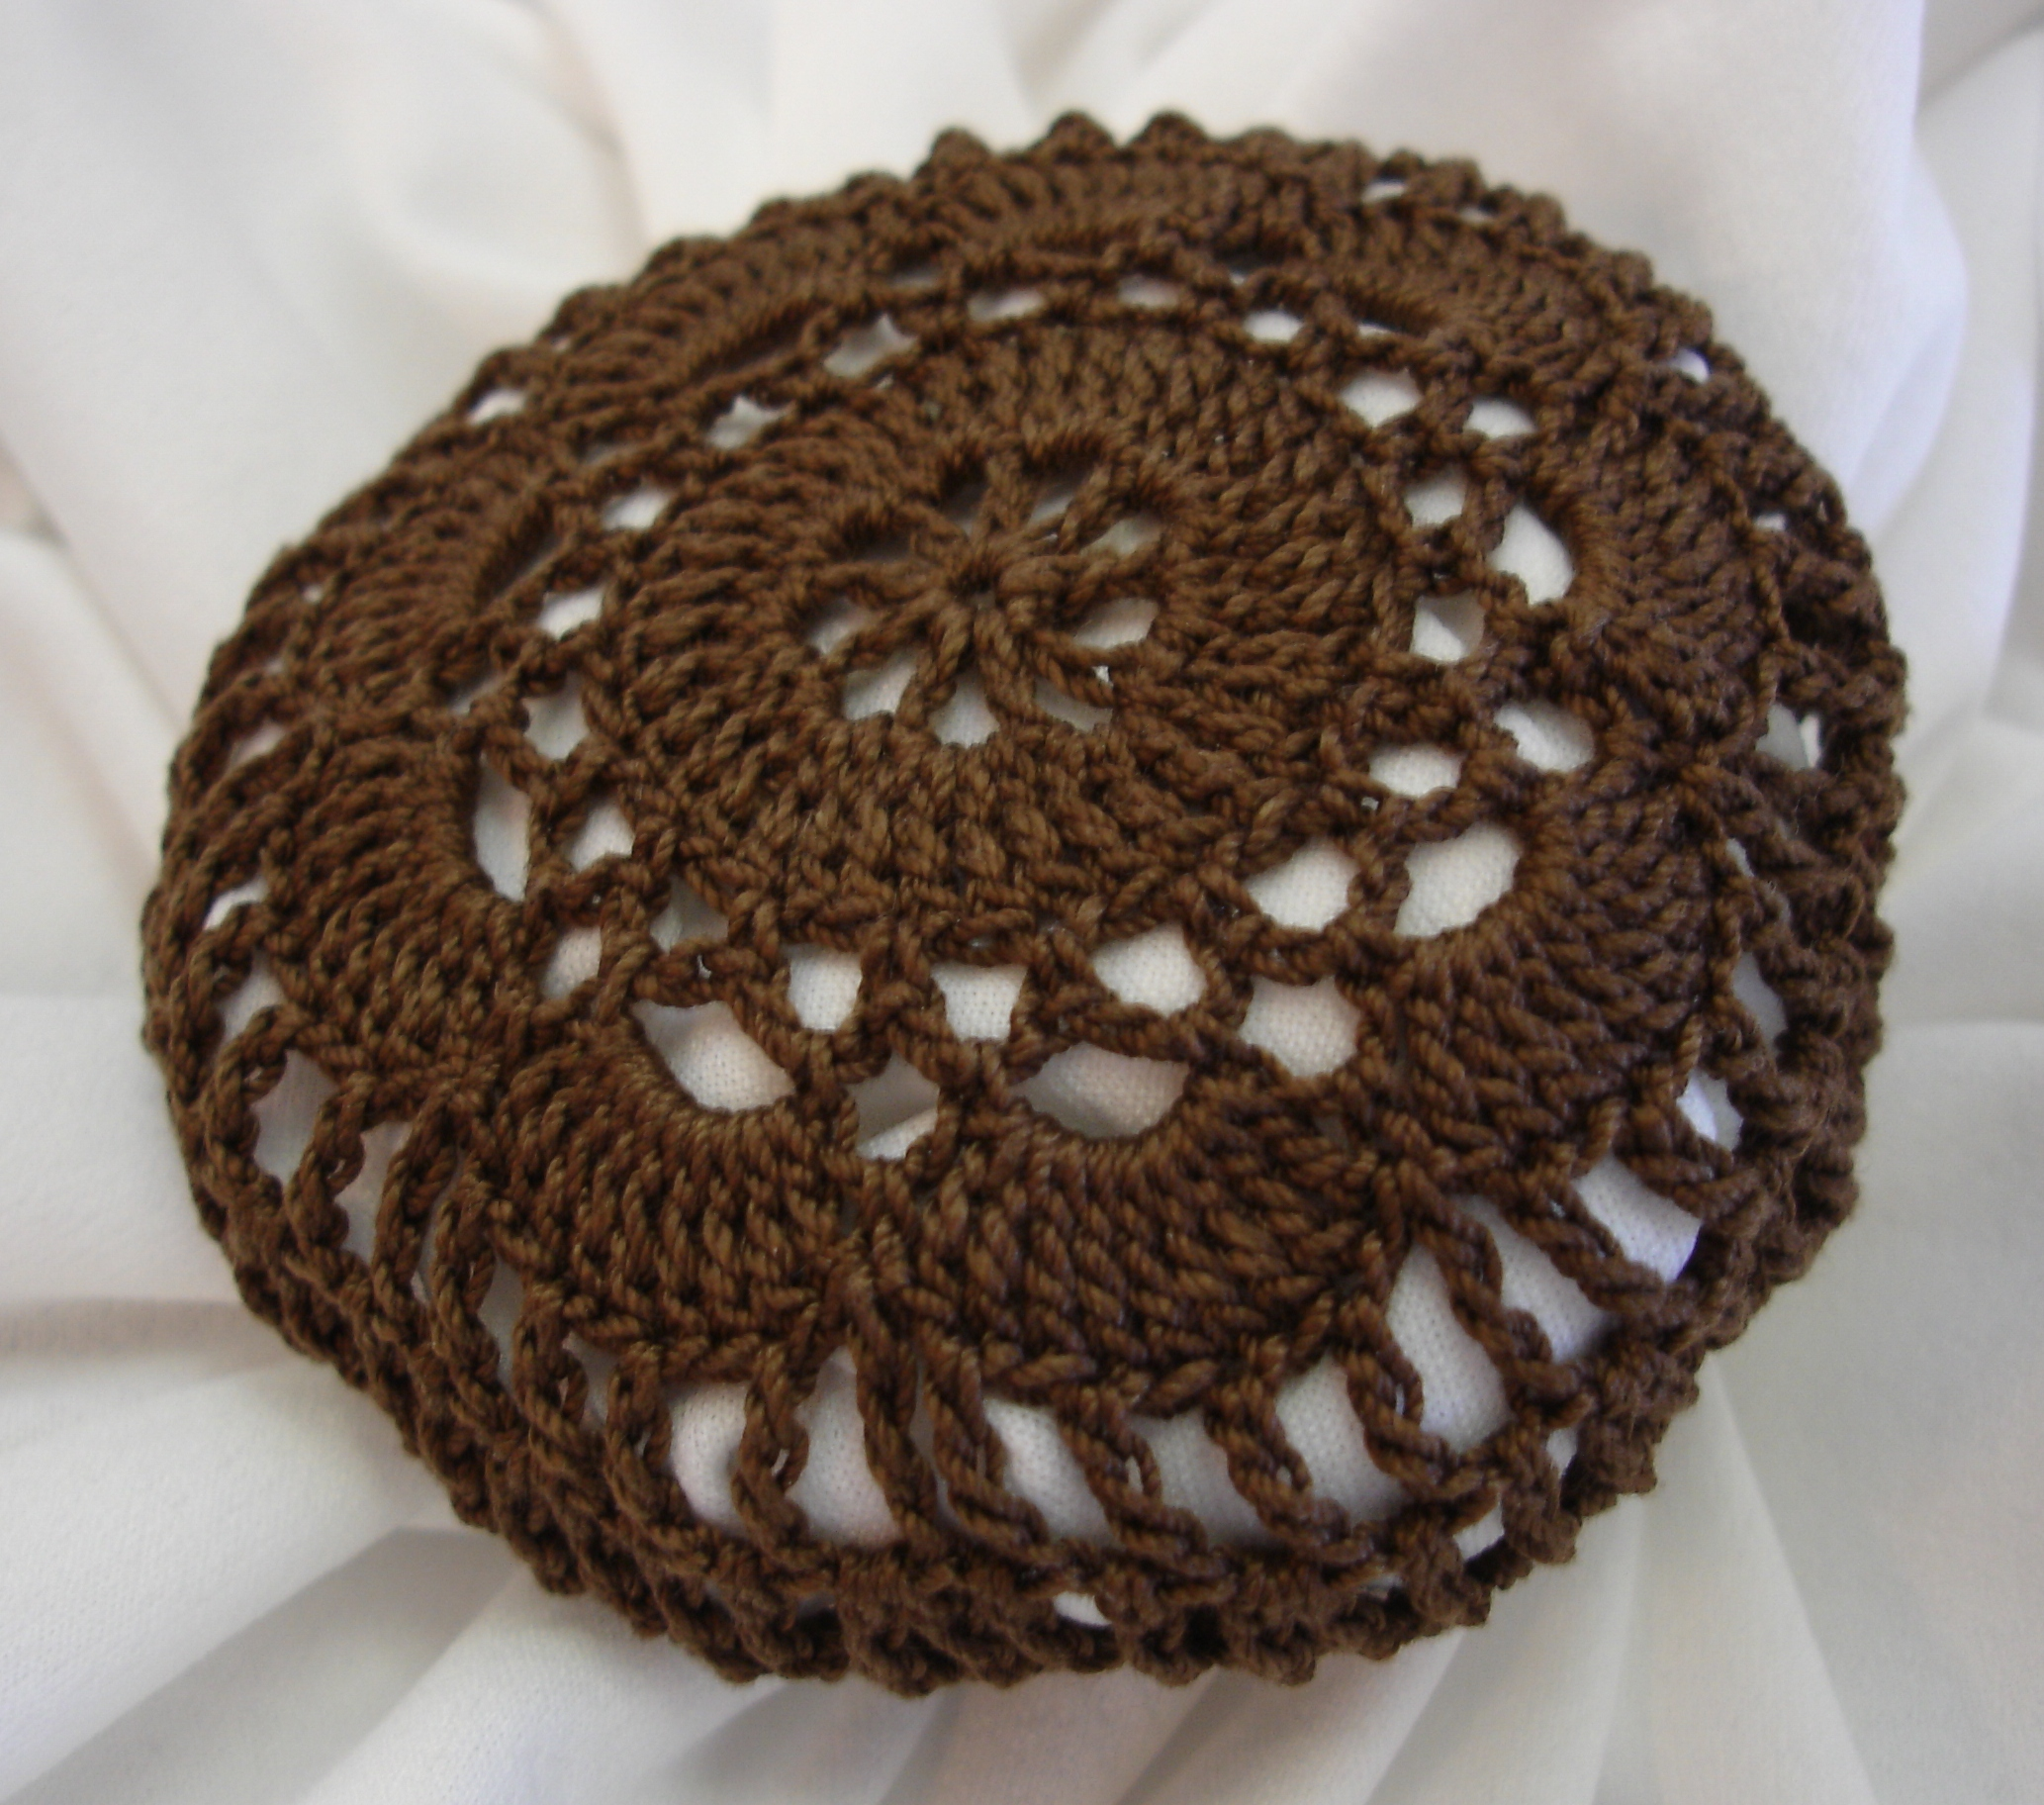 Crochet Hair Cover : Set of 3 Crocheted Hair Net / Bun Covers Flower Style merrydeals4u